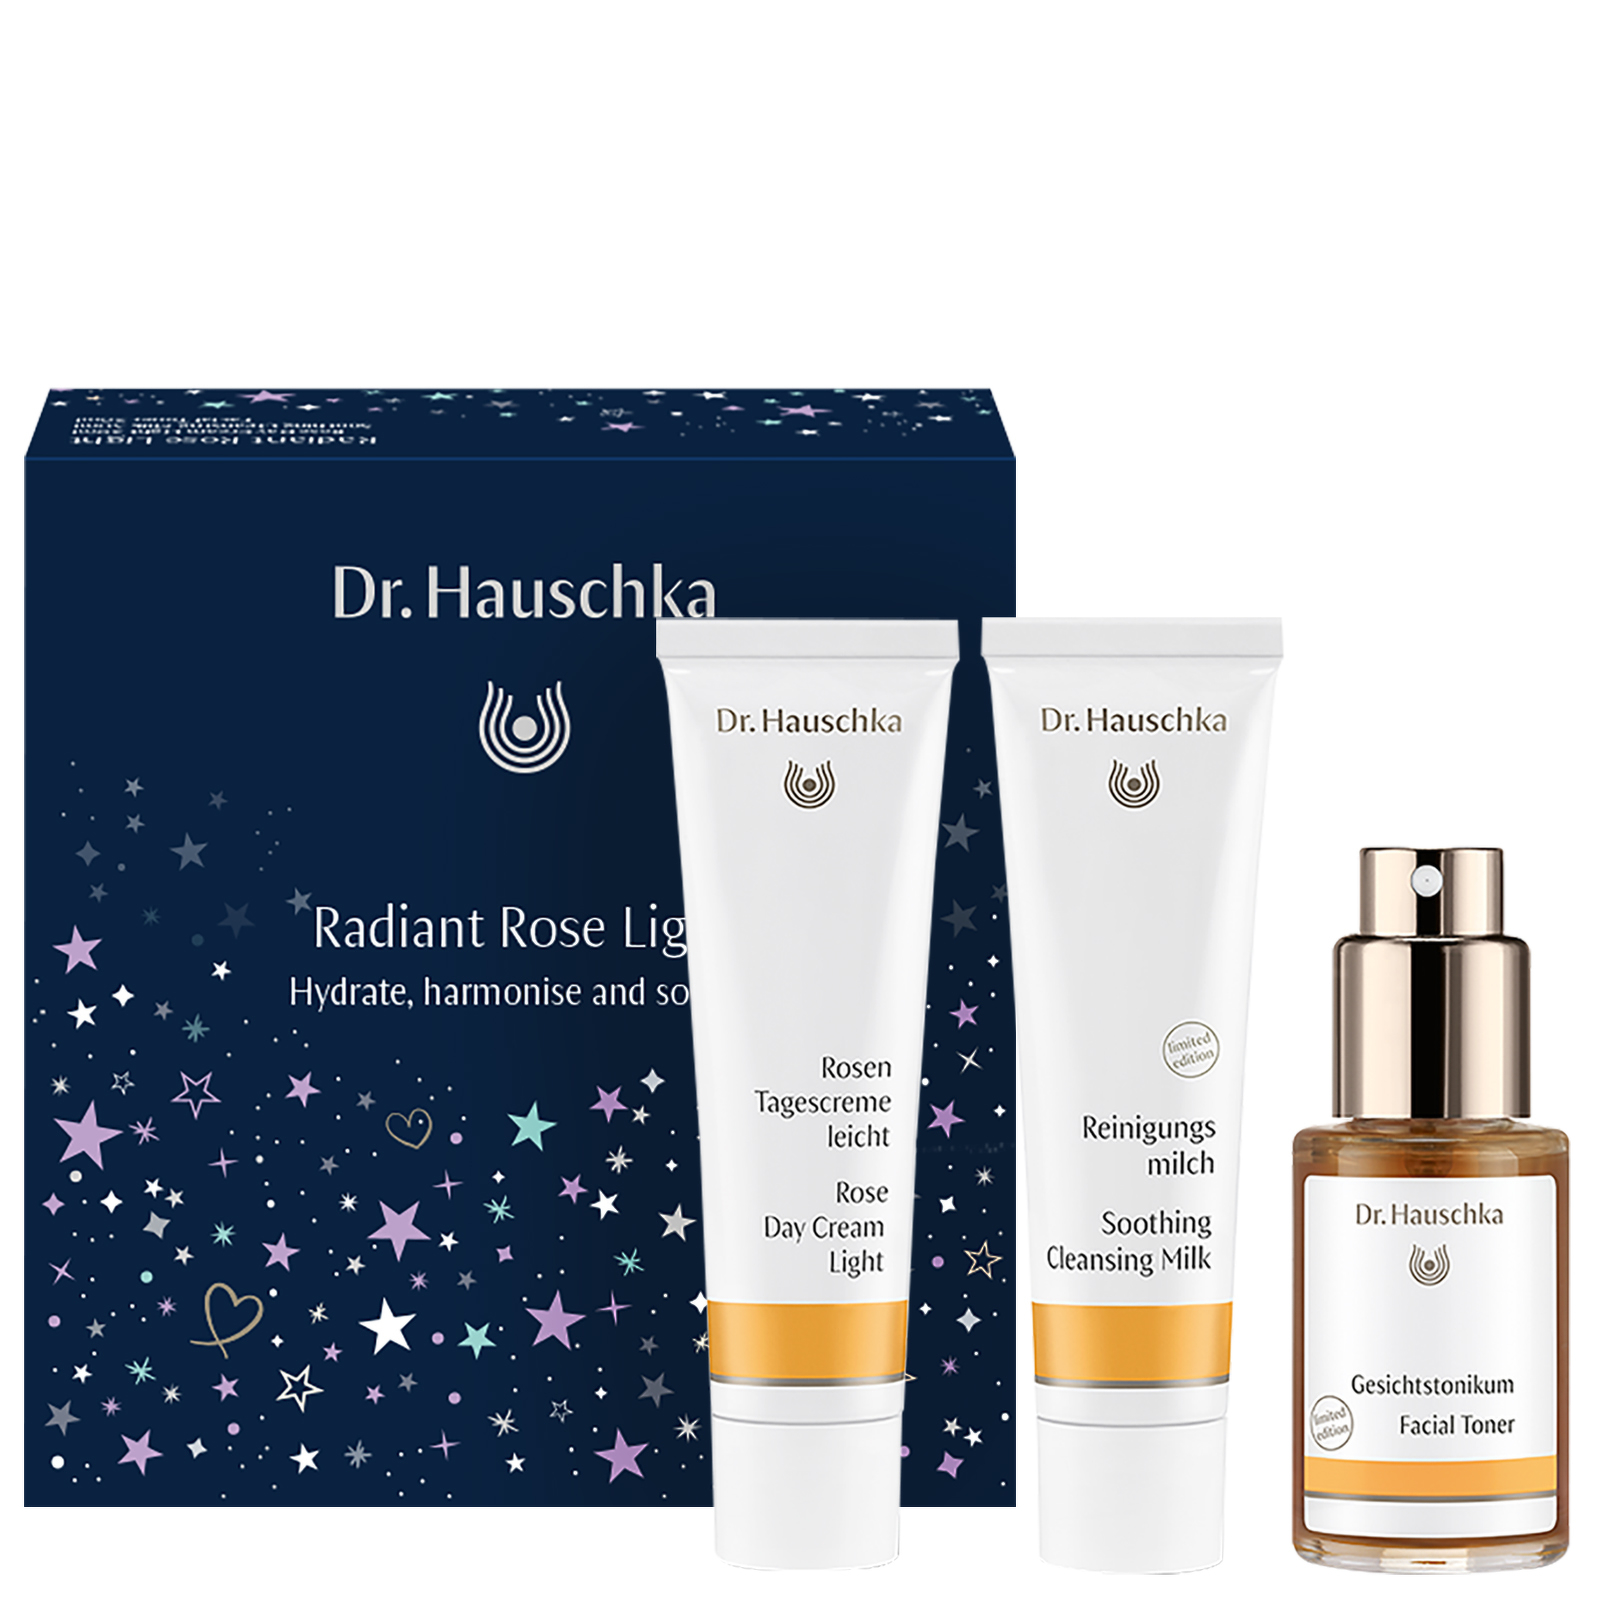 Dr. Hauschka Gifts & Accessories  Radiant Rose Light